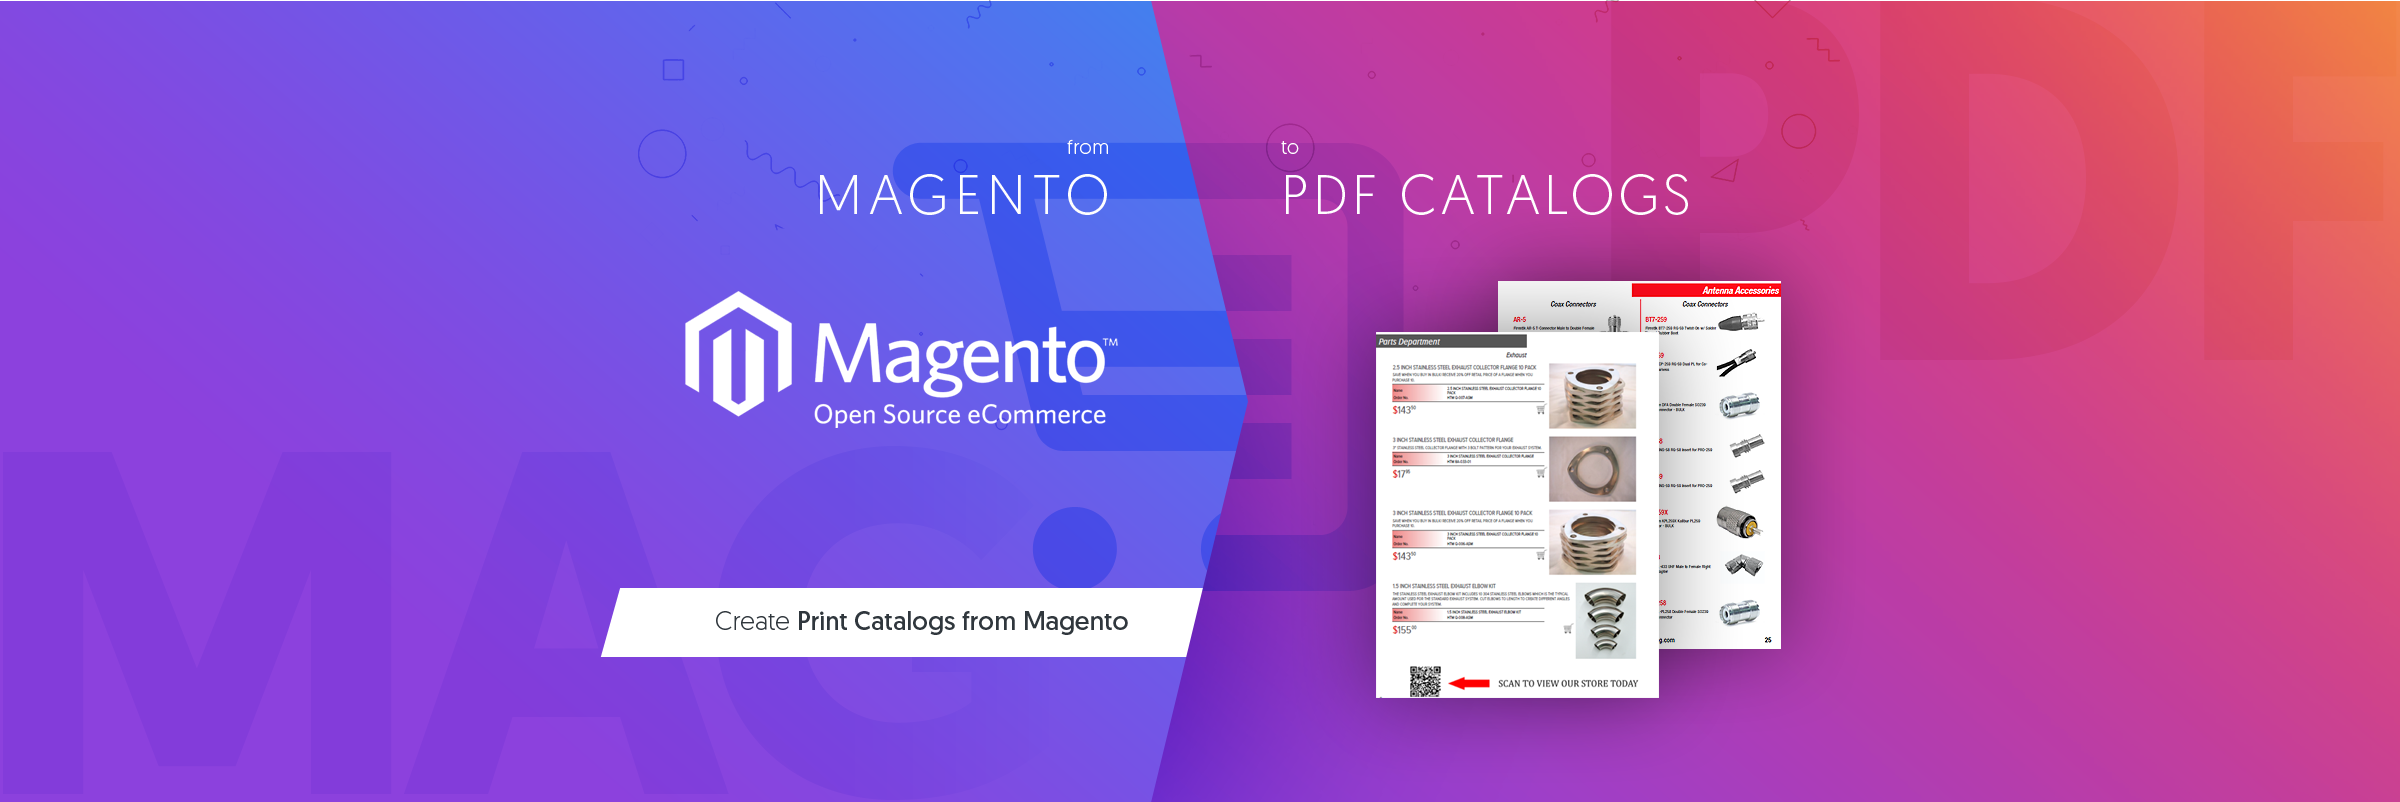 print-catalog-pages-from-magento-content – Print Catalogs from Your